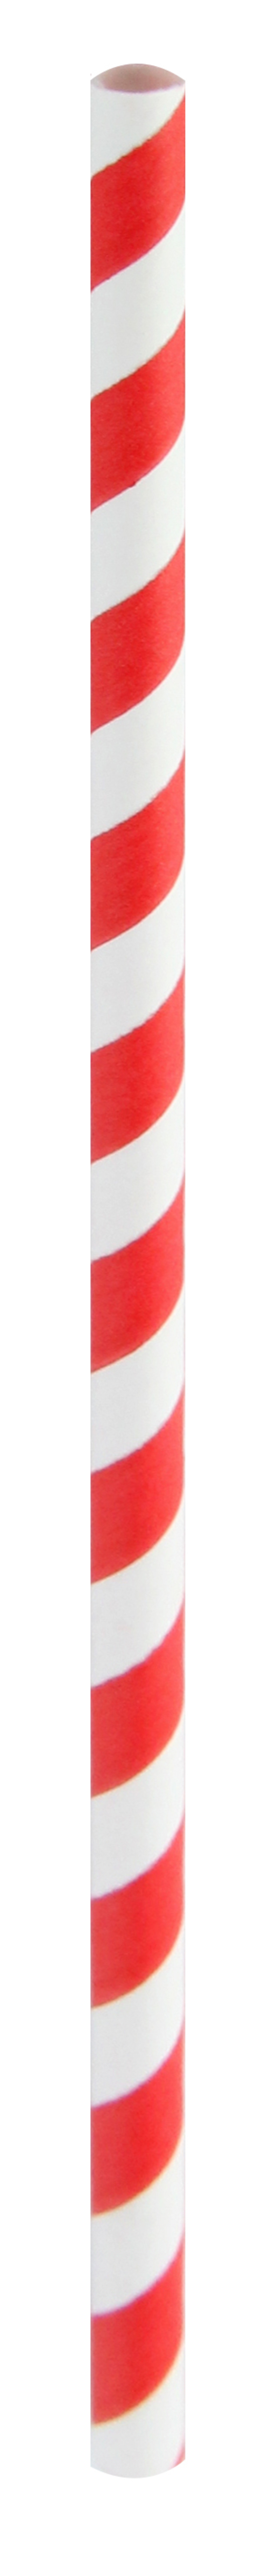 Durable Red Striped Cocktail Paper Straws - 5.7 Inches